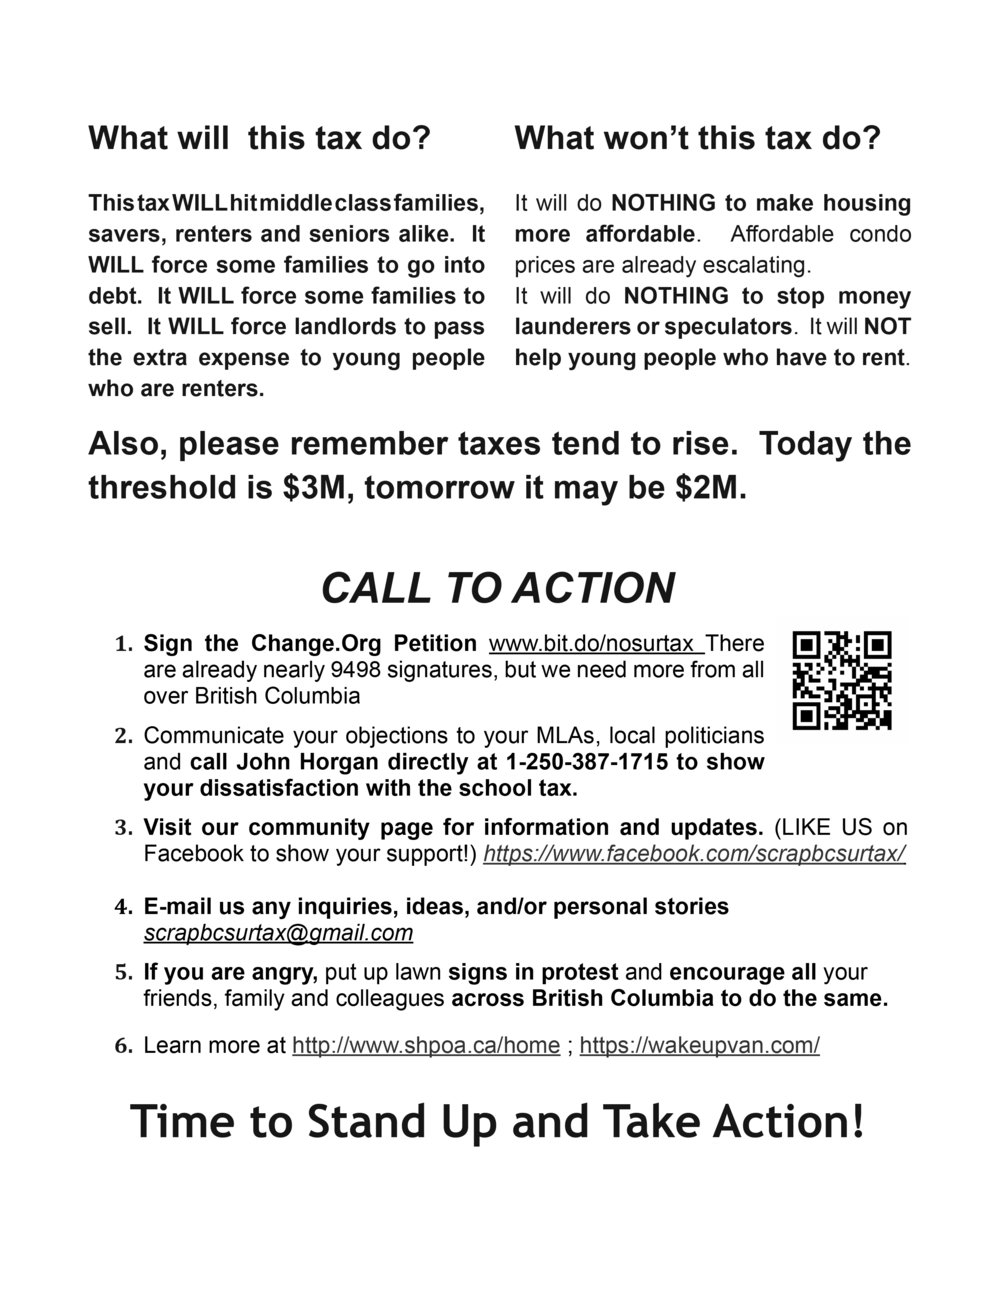 Wake up BC flyer May 1st Protest Rally Information piece Updated-2.jpg